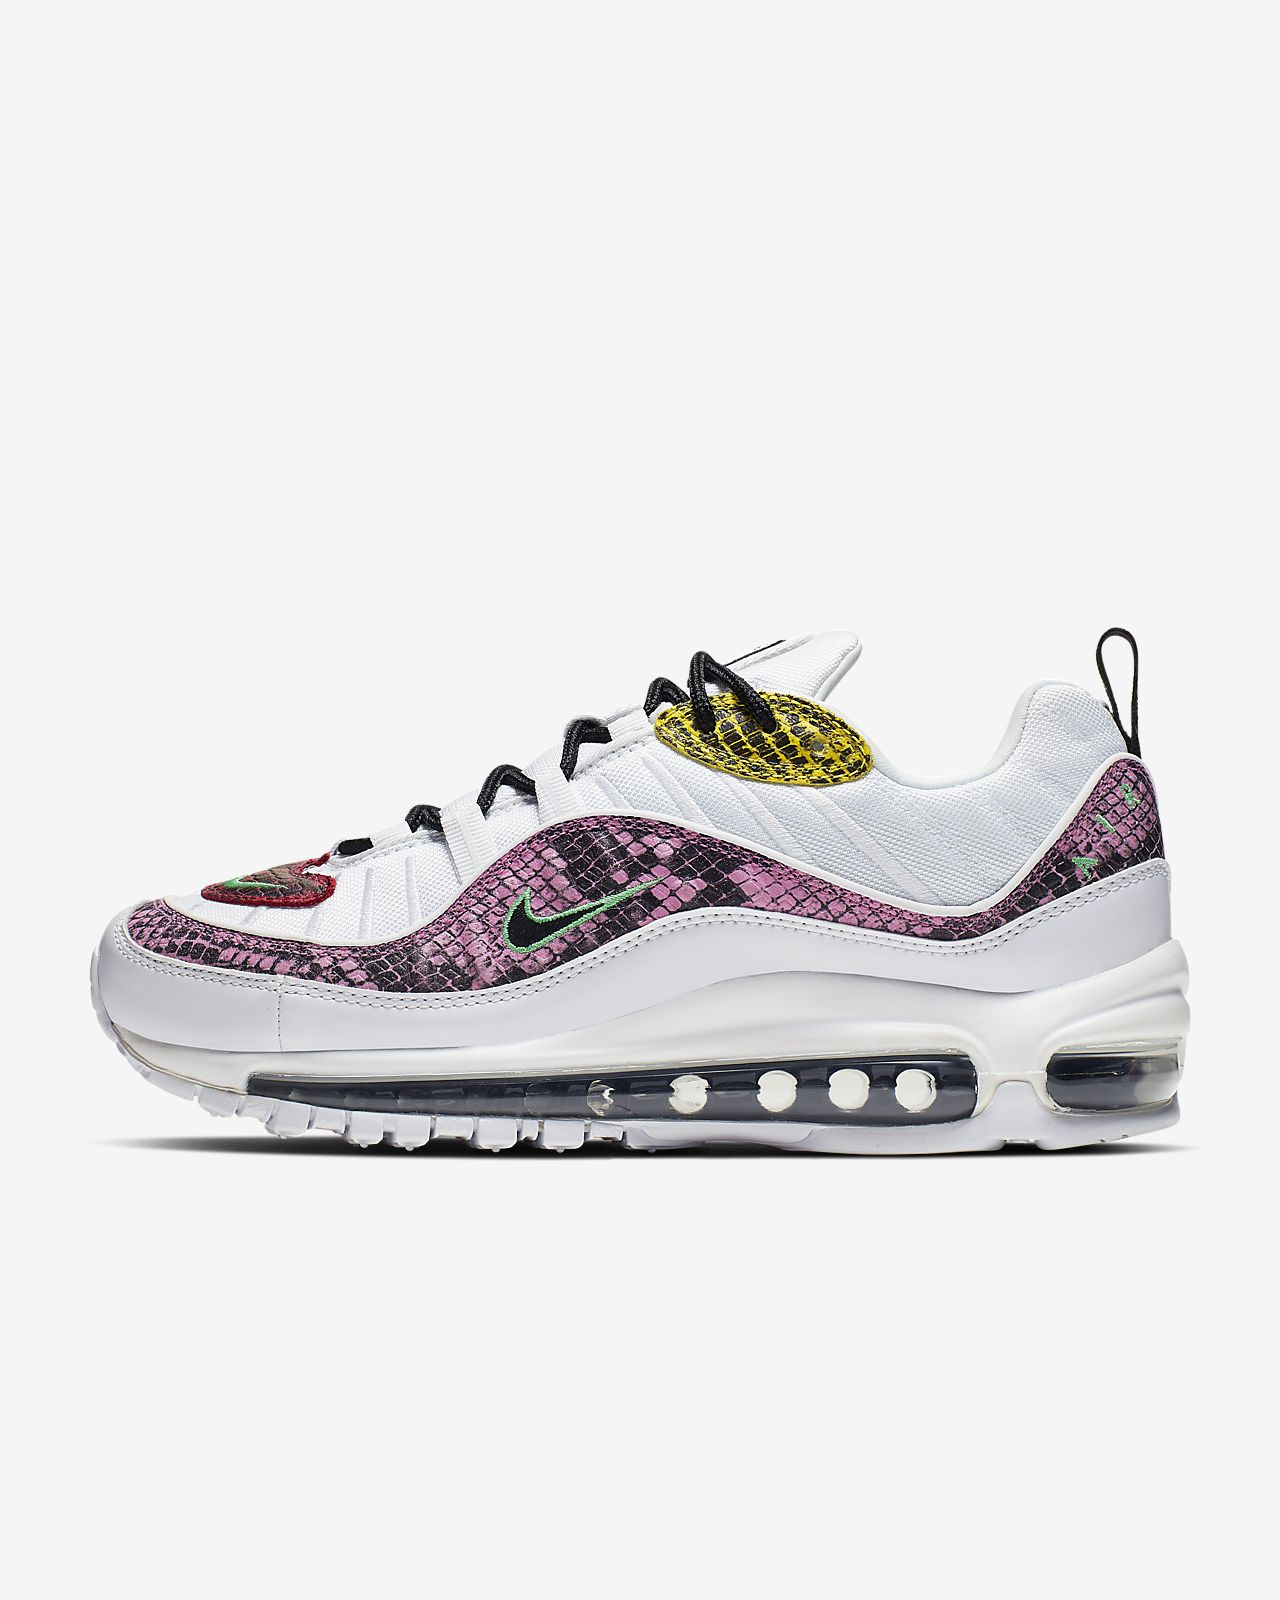 0e6f8af378fc Nike Air Max 98 Premium Animal Women s Shoe. Nike.com